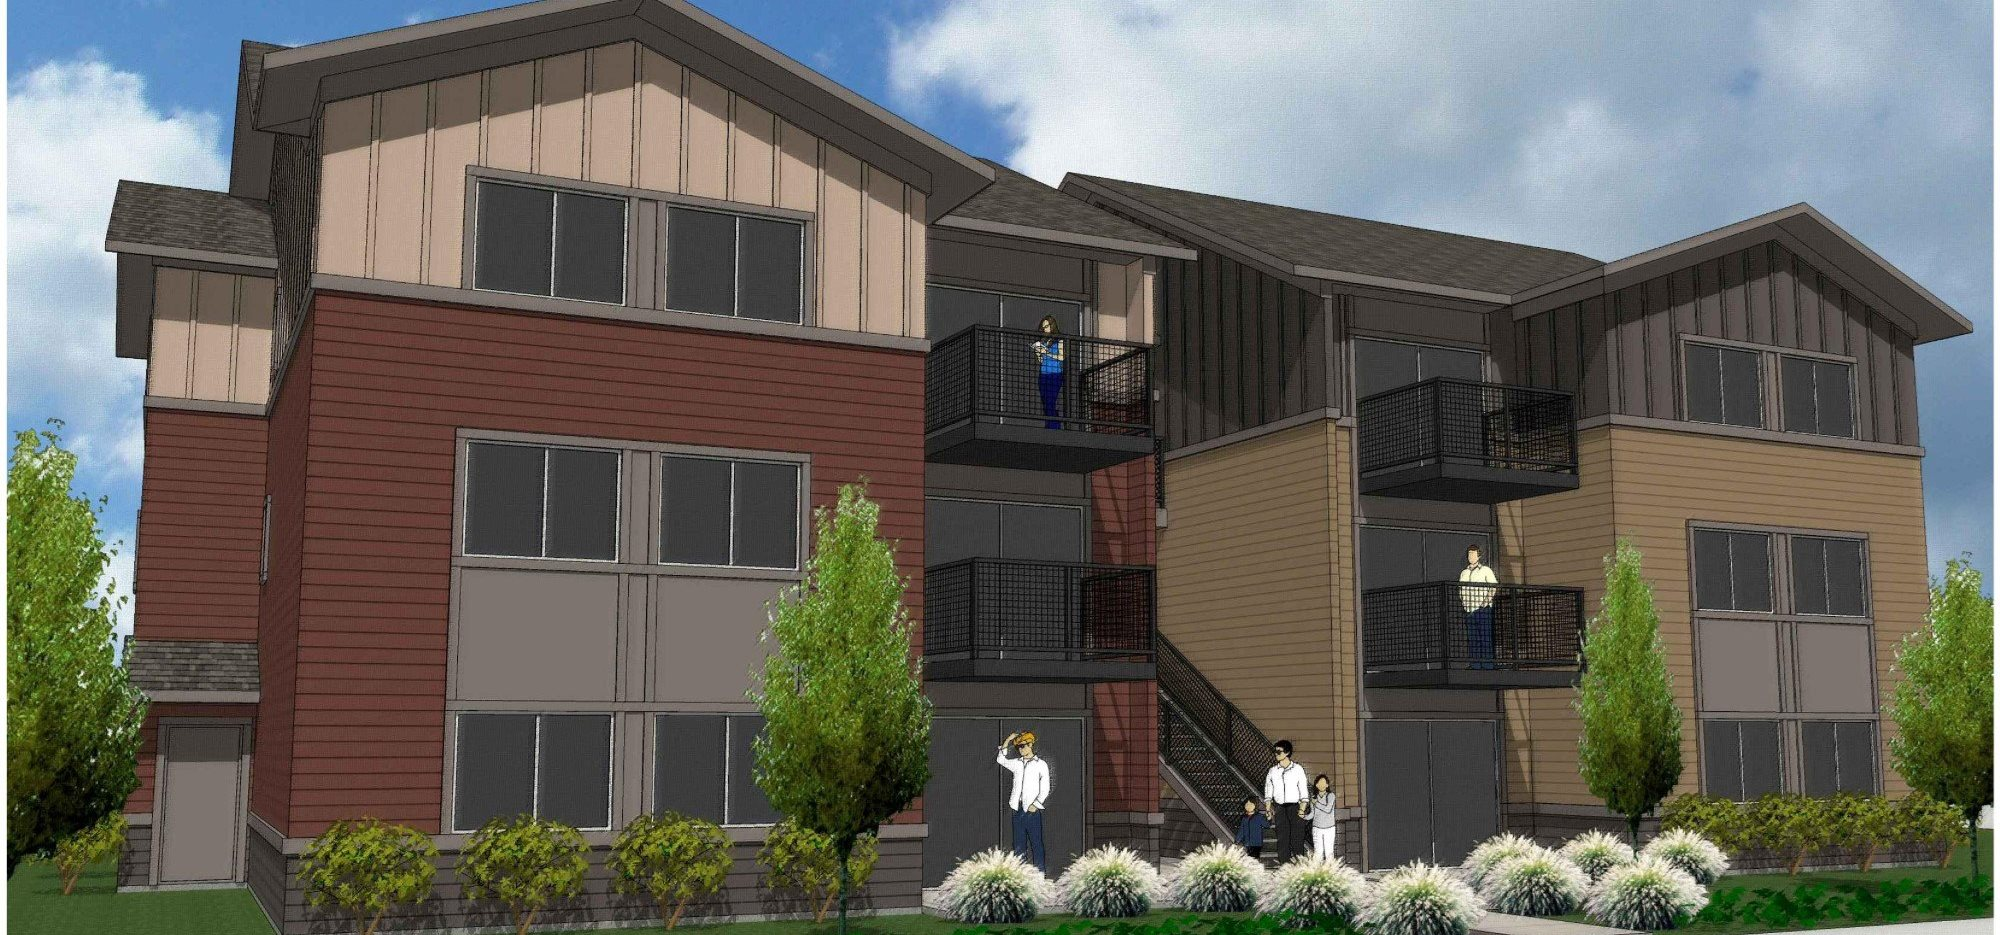 Claxter Crossing Apartments Exterior Building Rendering